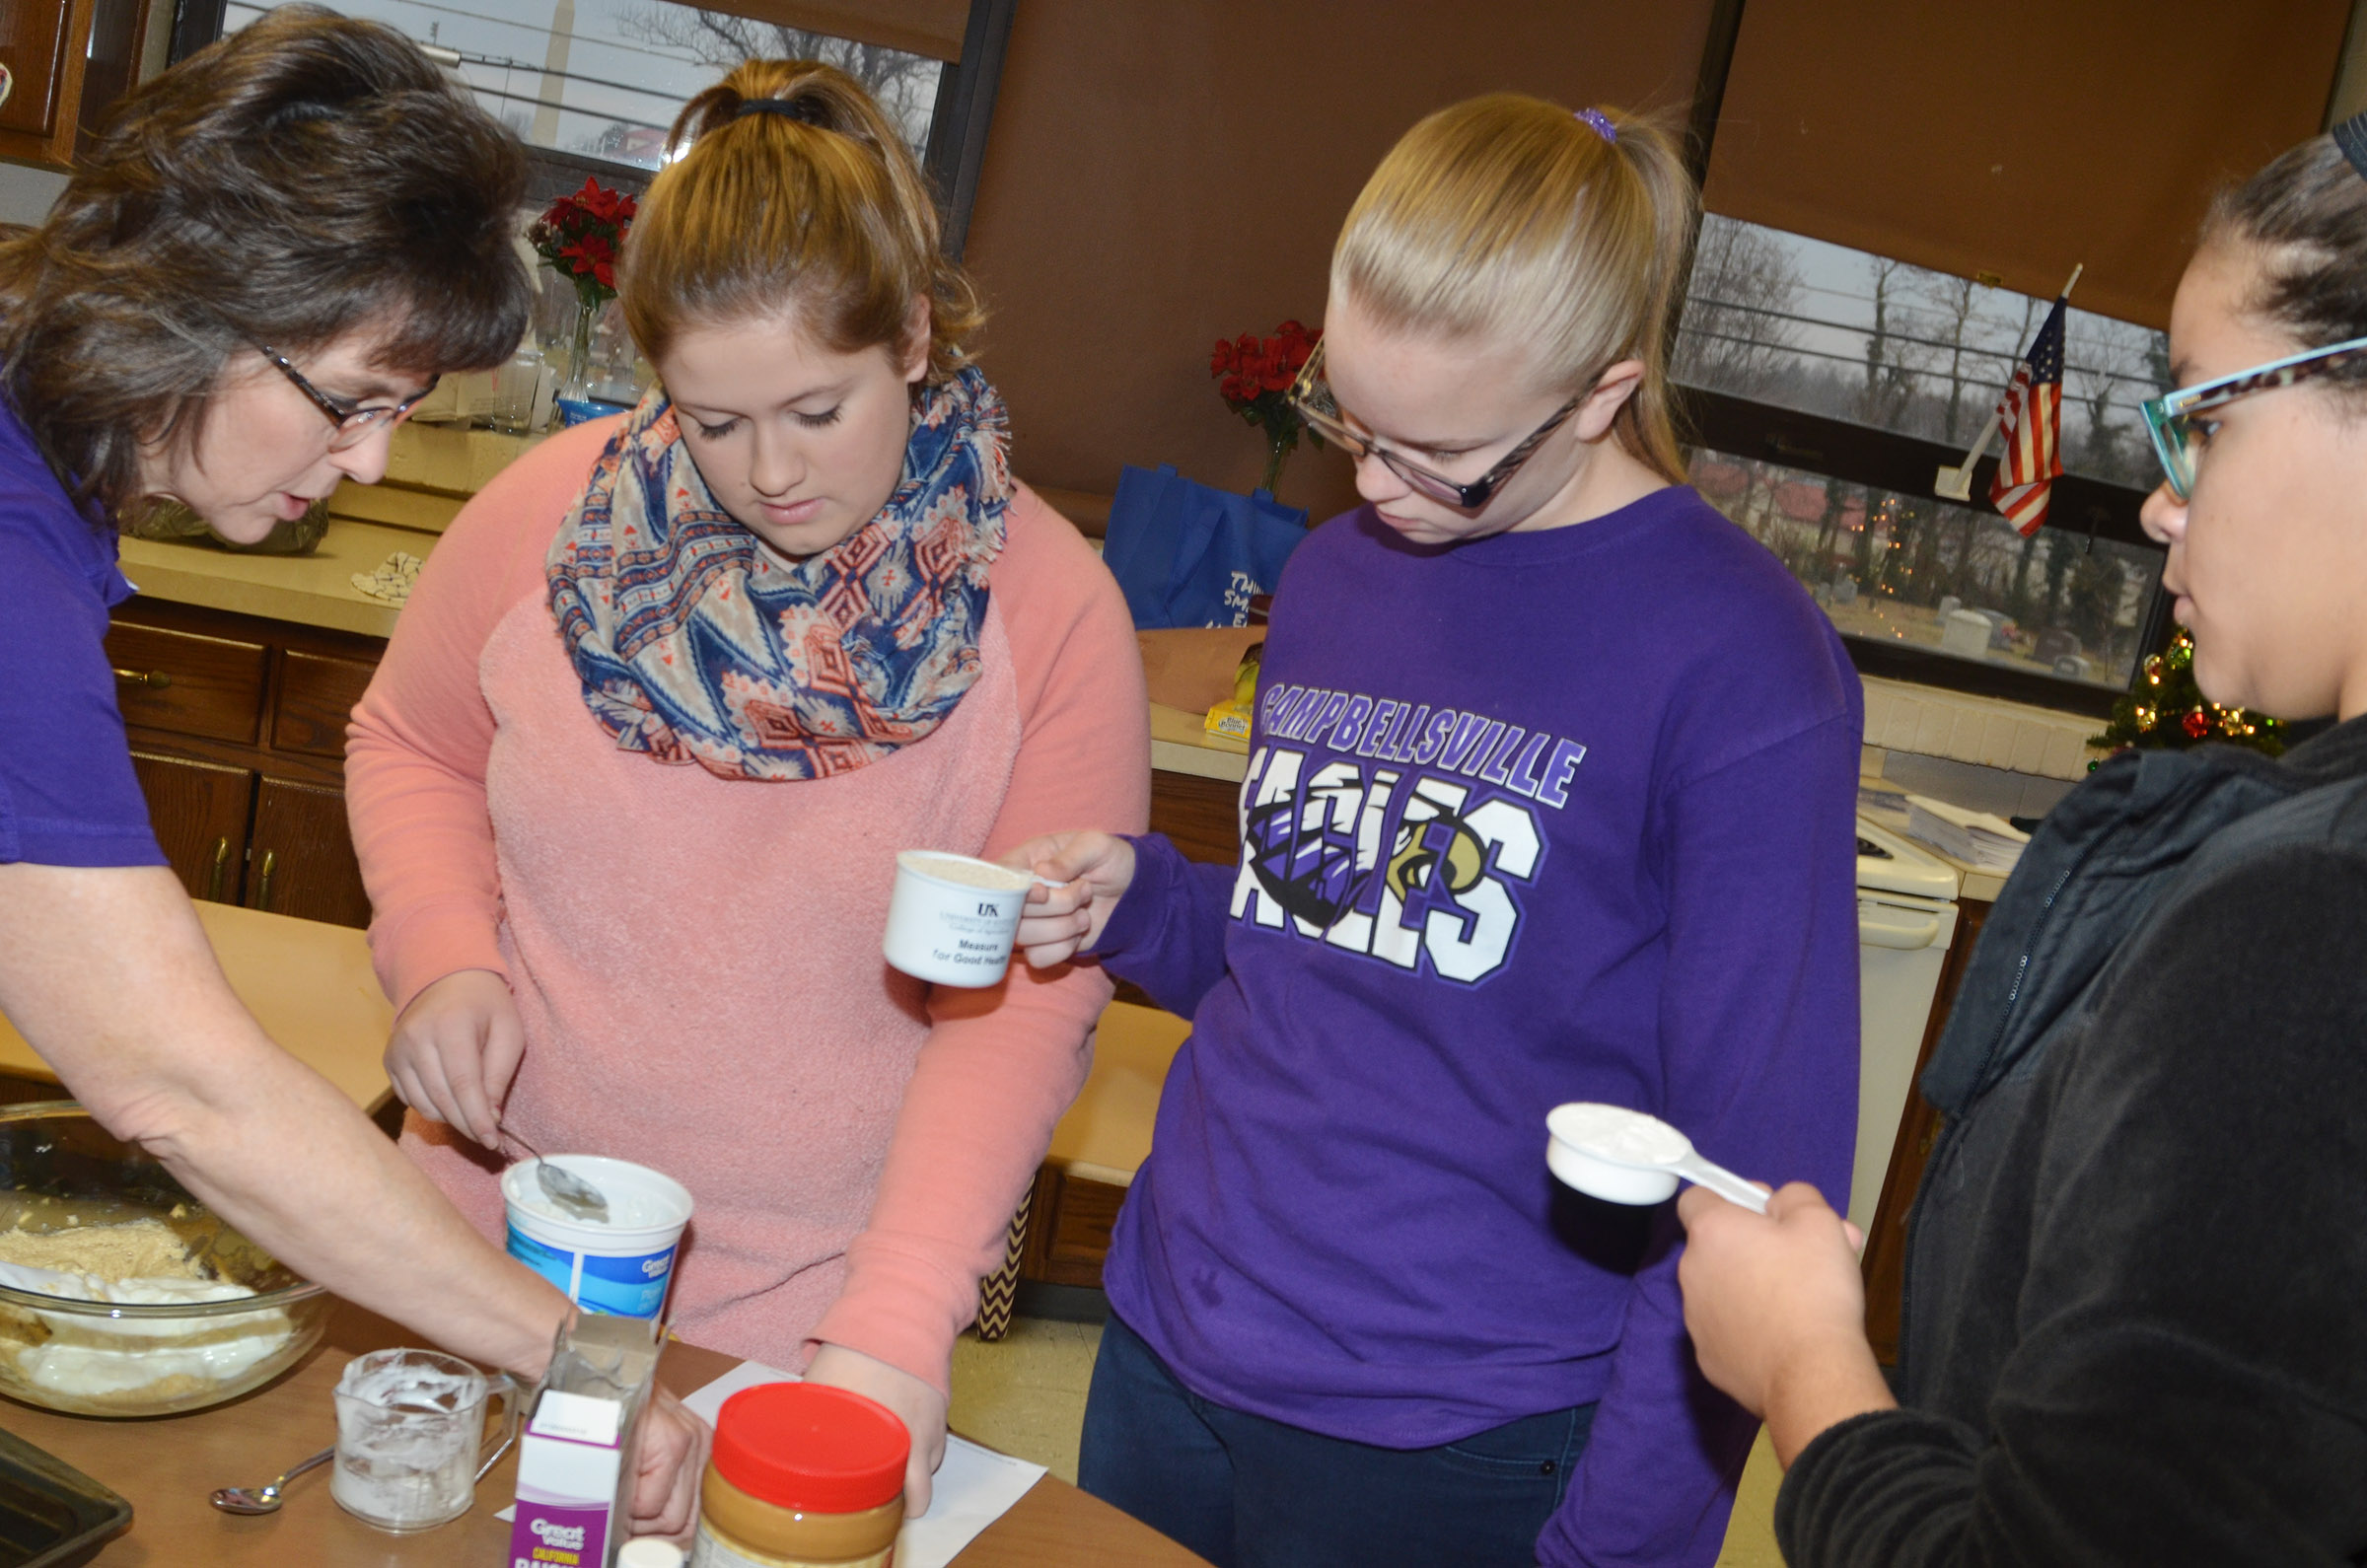 CHS teacher Deanna Campbell, at left, helps freshmen, from left, Aleah Knifley, Tahler Franklin and Taliyah Hazelwood measure ingredients for banana oat cookies.